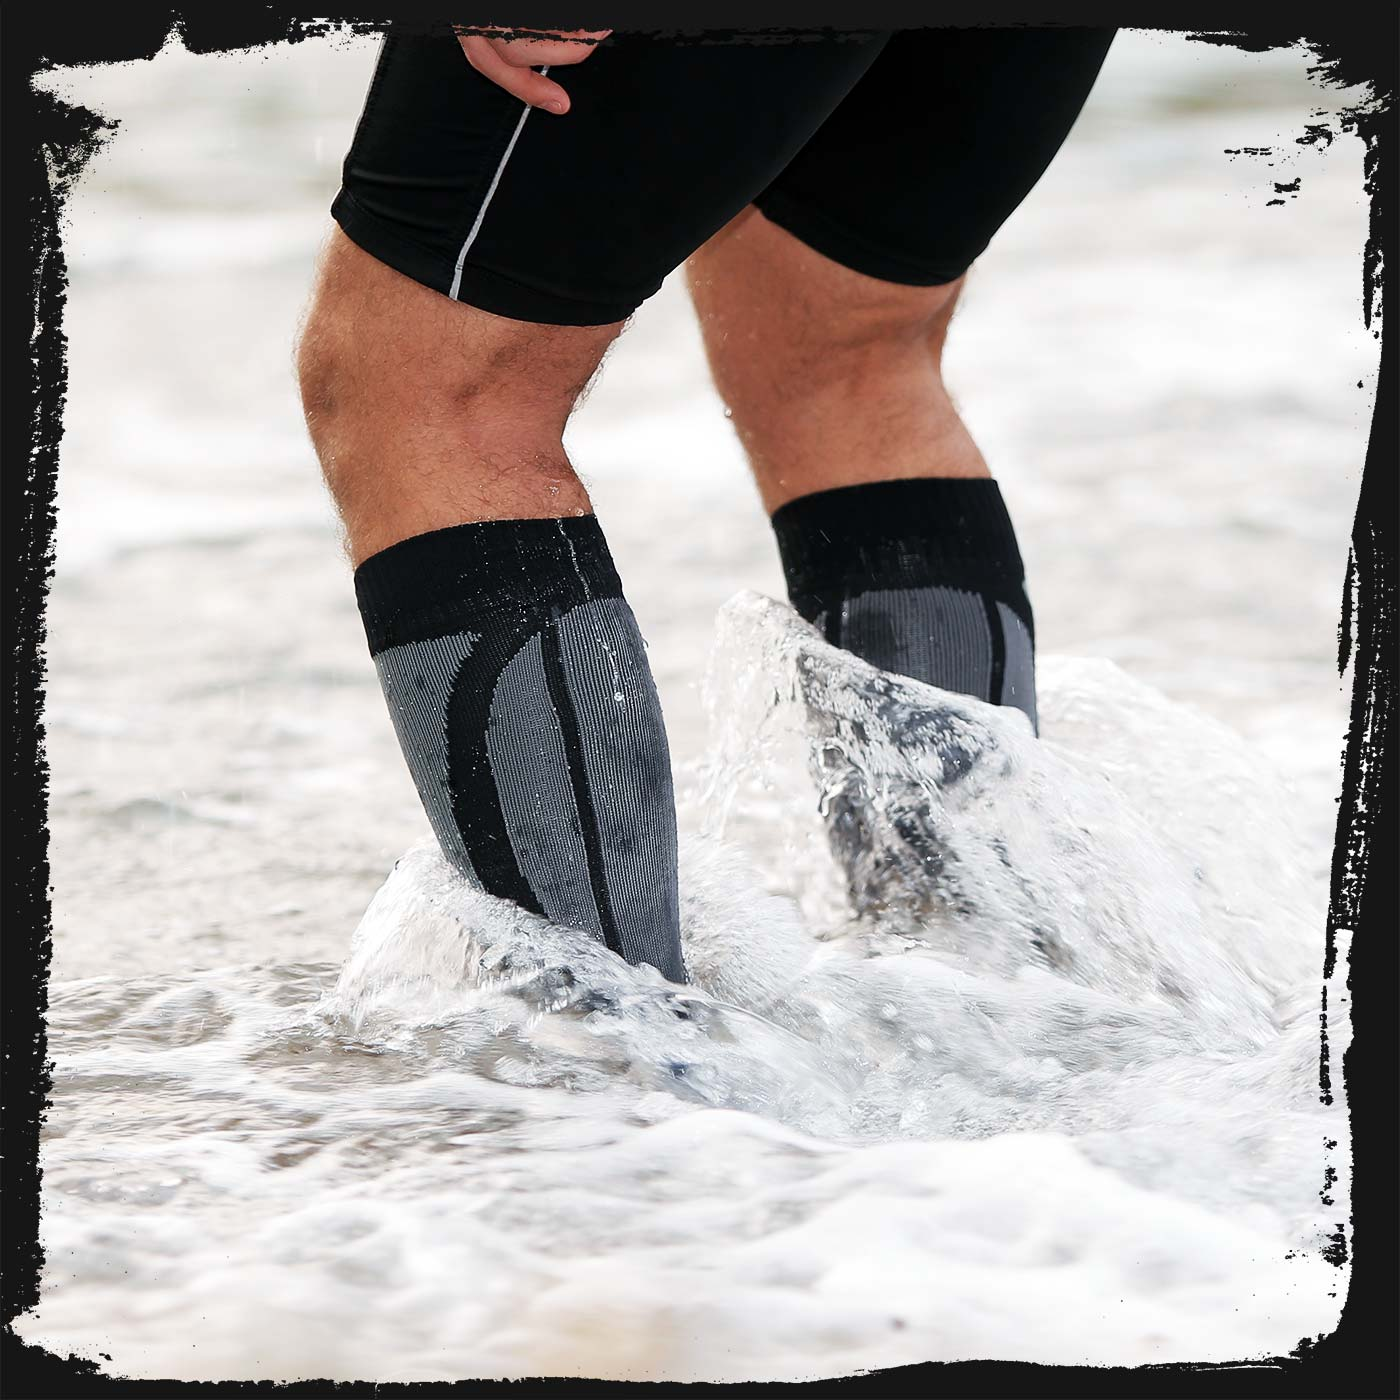 arcticdry-kneelength-waterproof-socks-3